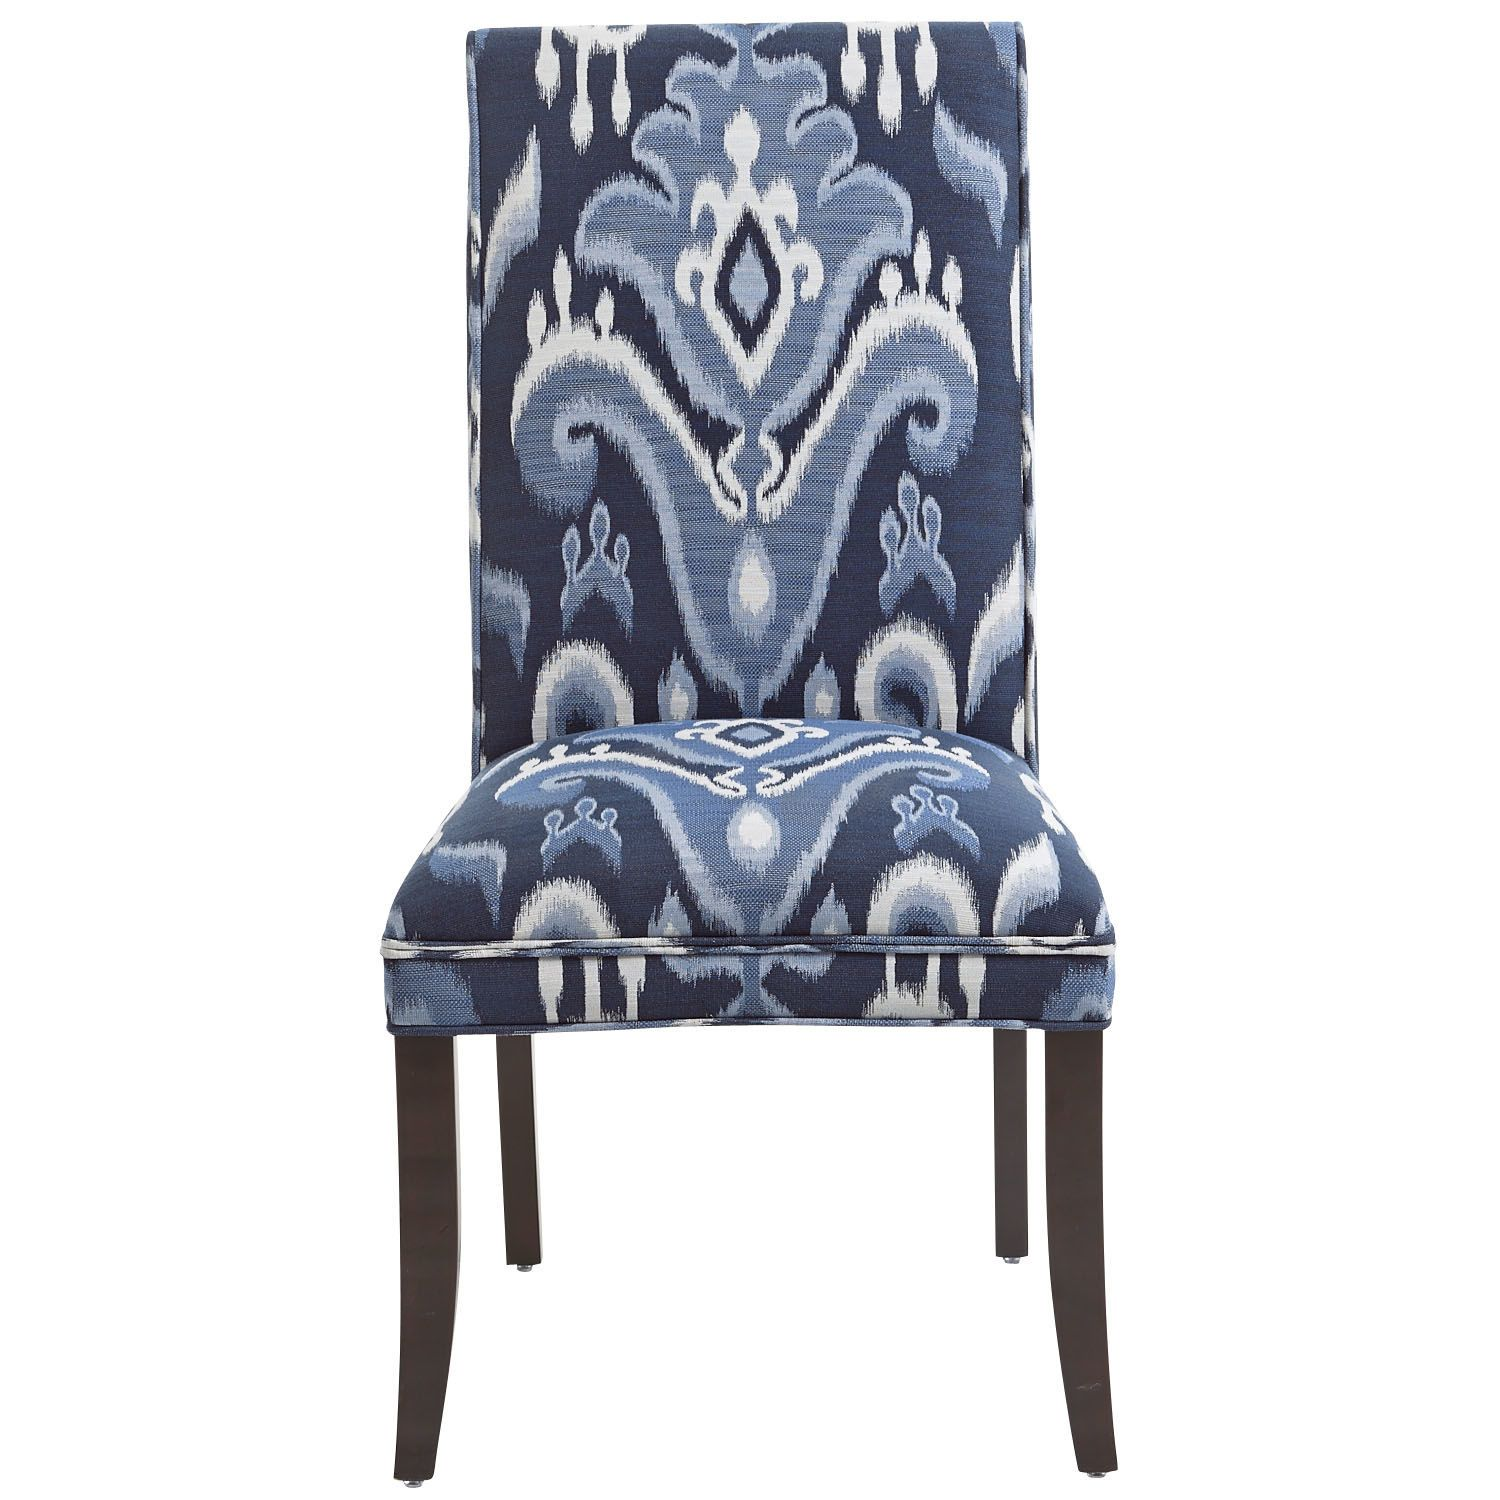 Angela Deluxe Dining Chair Indigo Ikat Chair Traditional Dining Chairs Traditional Chairs #pier #one #living #room #chairs